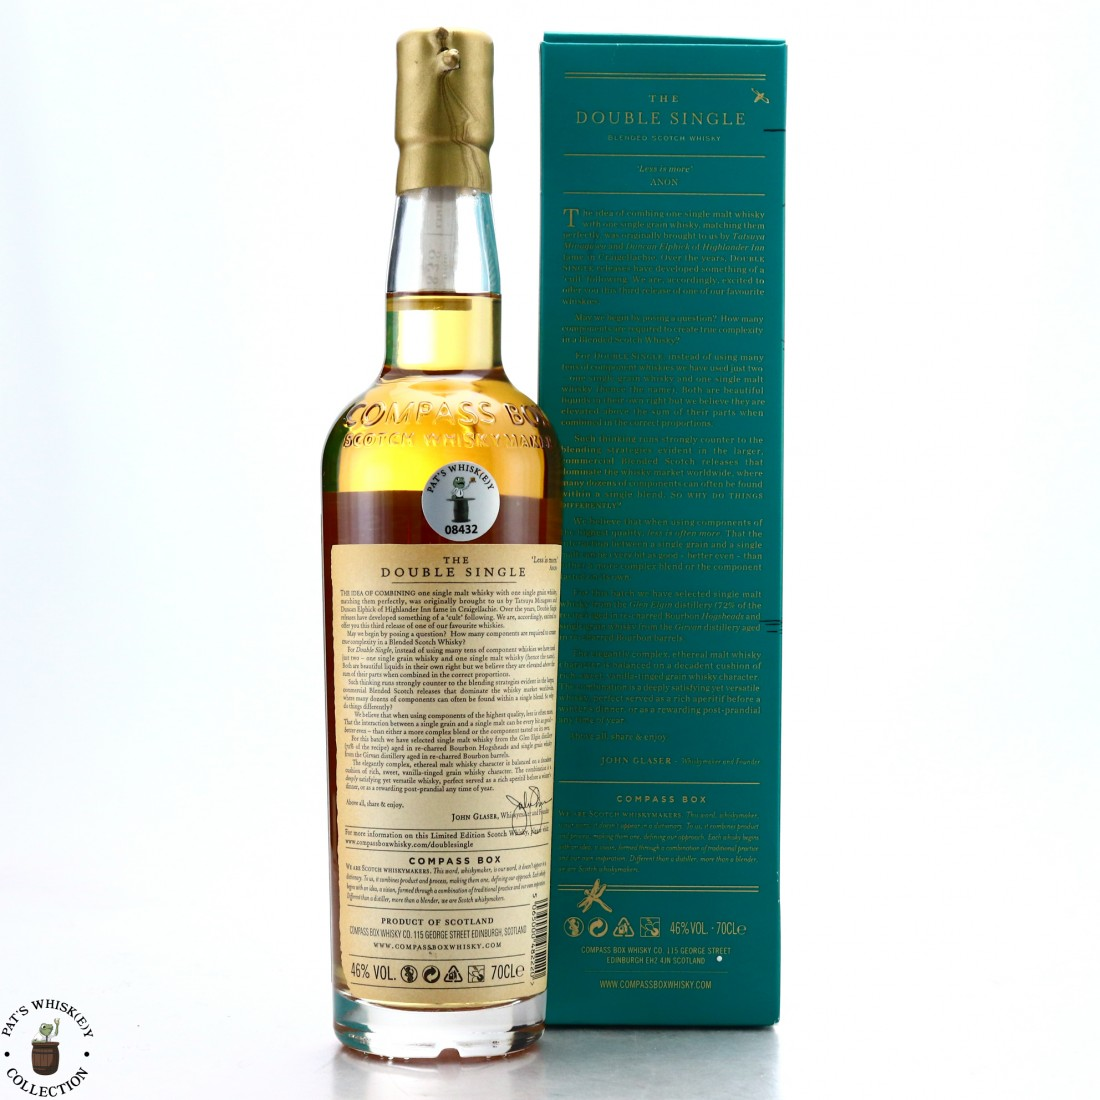 Compass Box The Double Single 2017